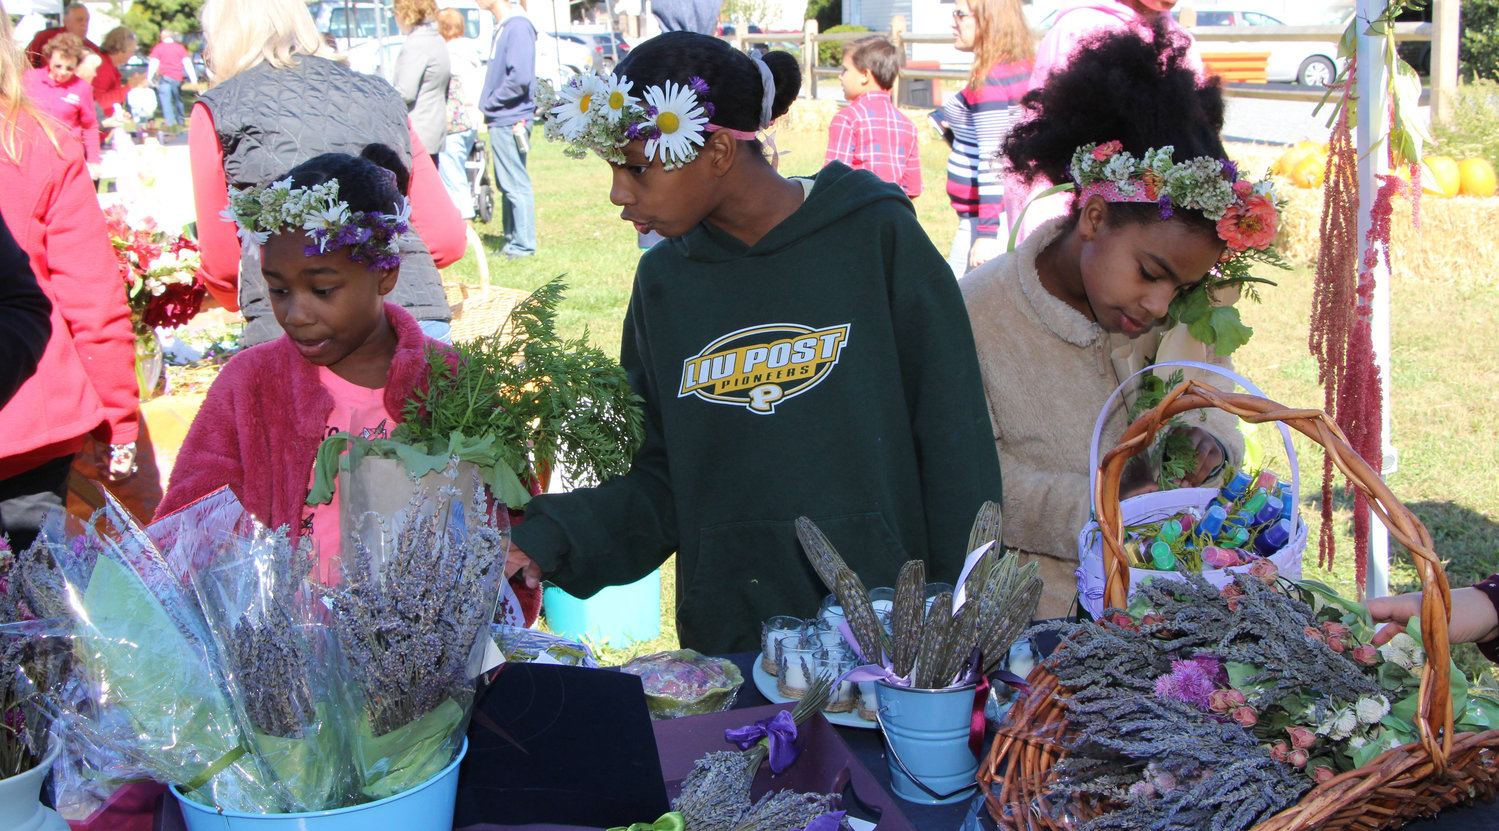 Delila Stevens, 8, left, and her sisters Desarae, 10, and Gabriella, 9, wore floral crowns and looked through dried flowers at the East Meadow Farm's annual Family Fun Day.